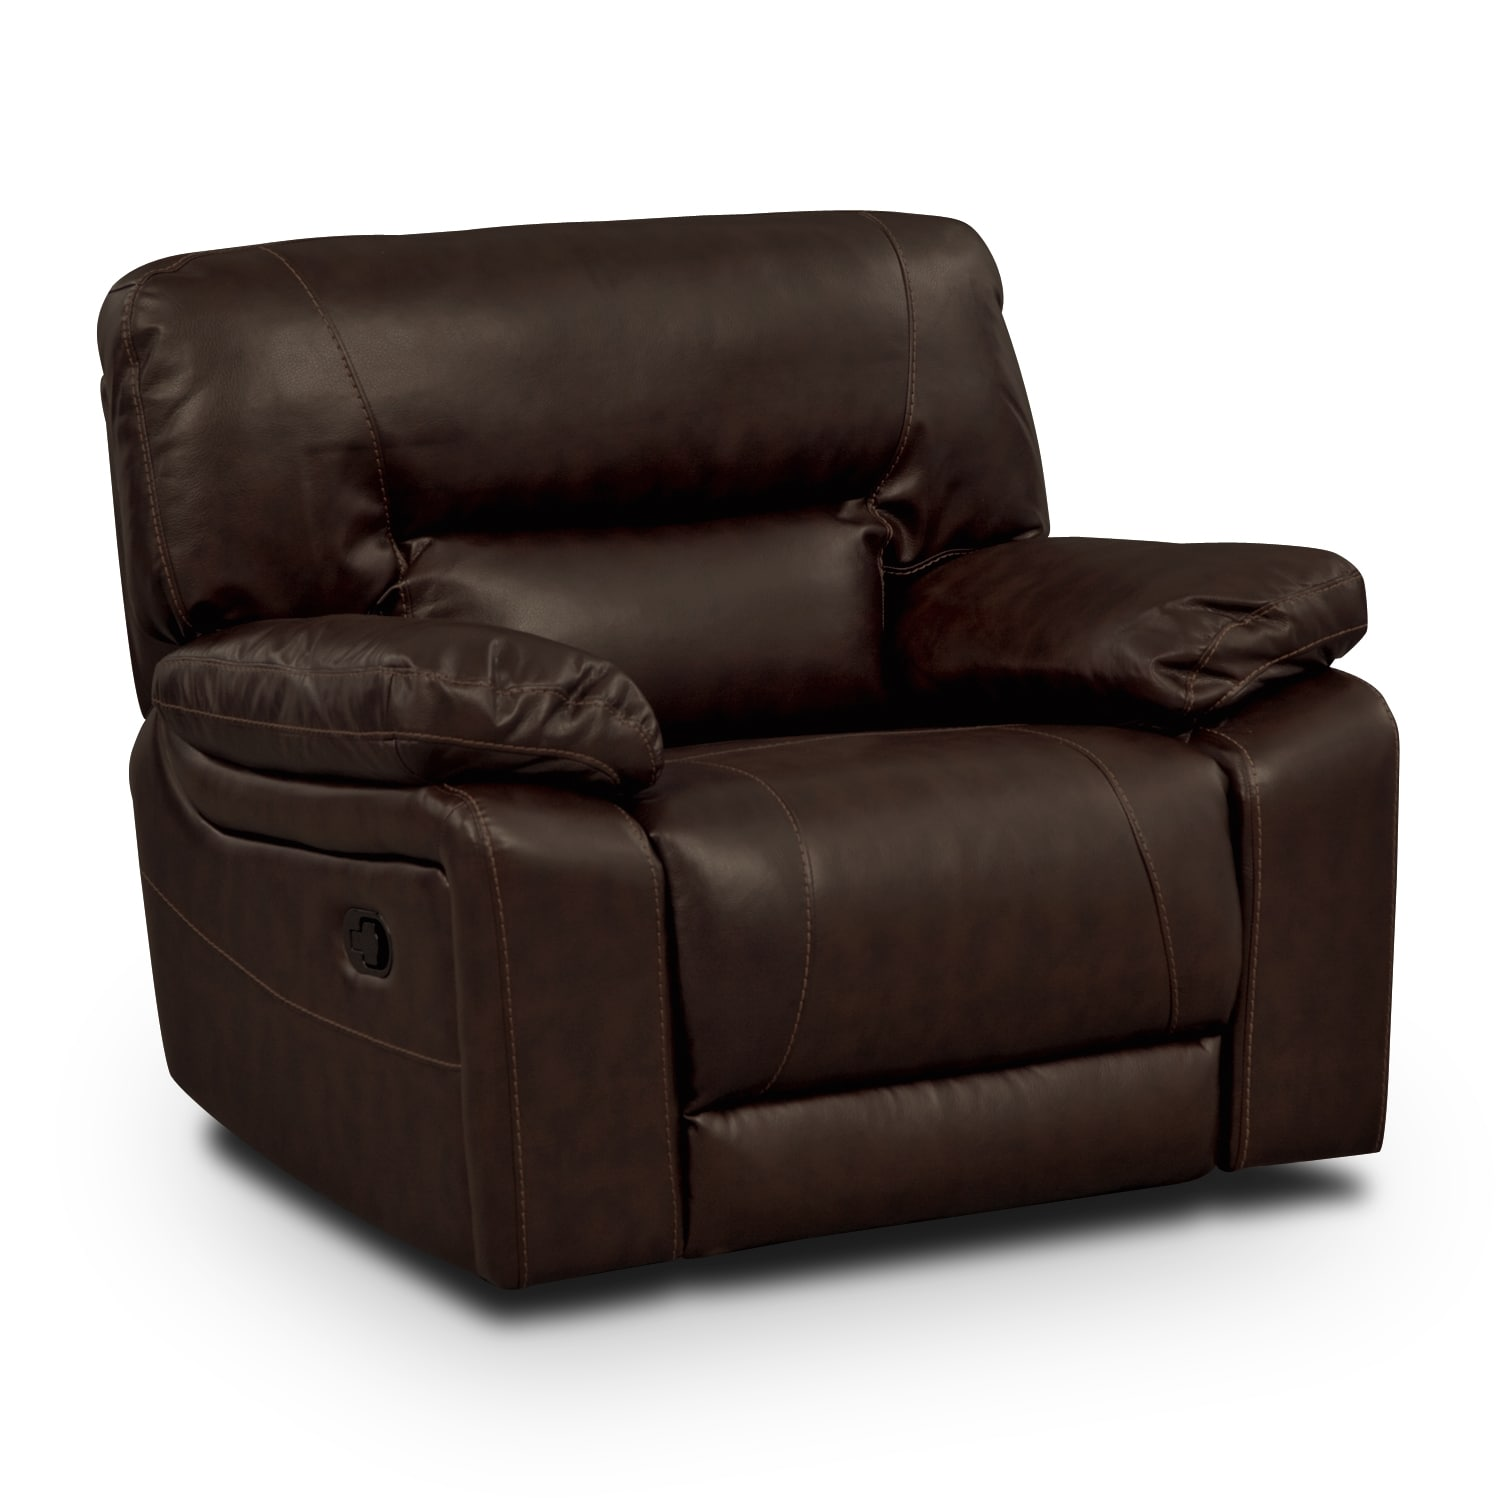 Living Room Furniture - Durango Godiva Glider Recliner